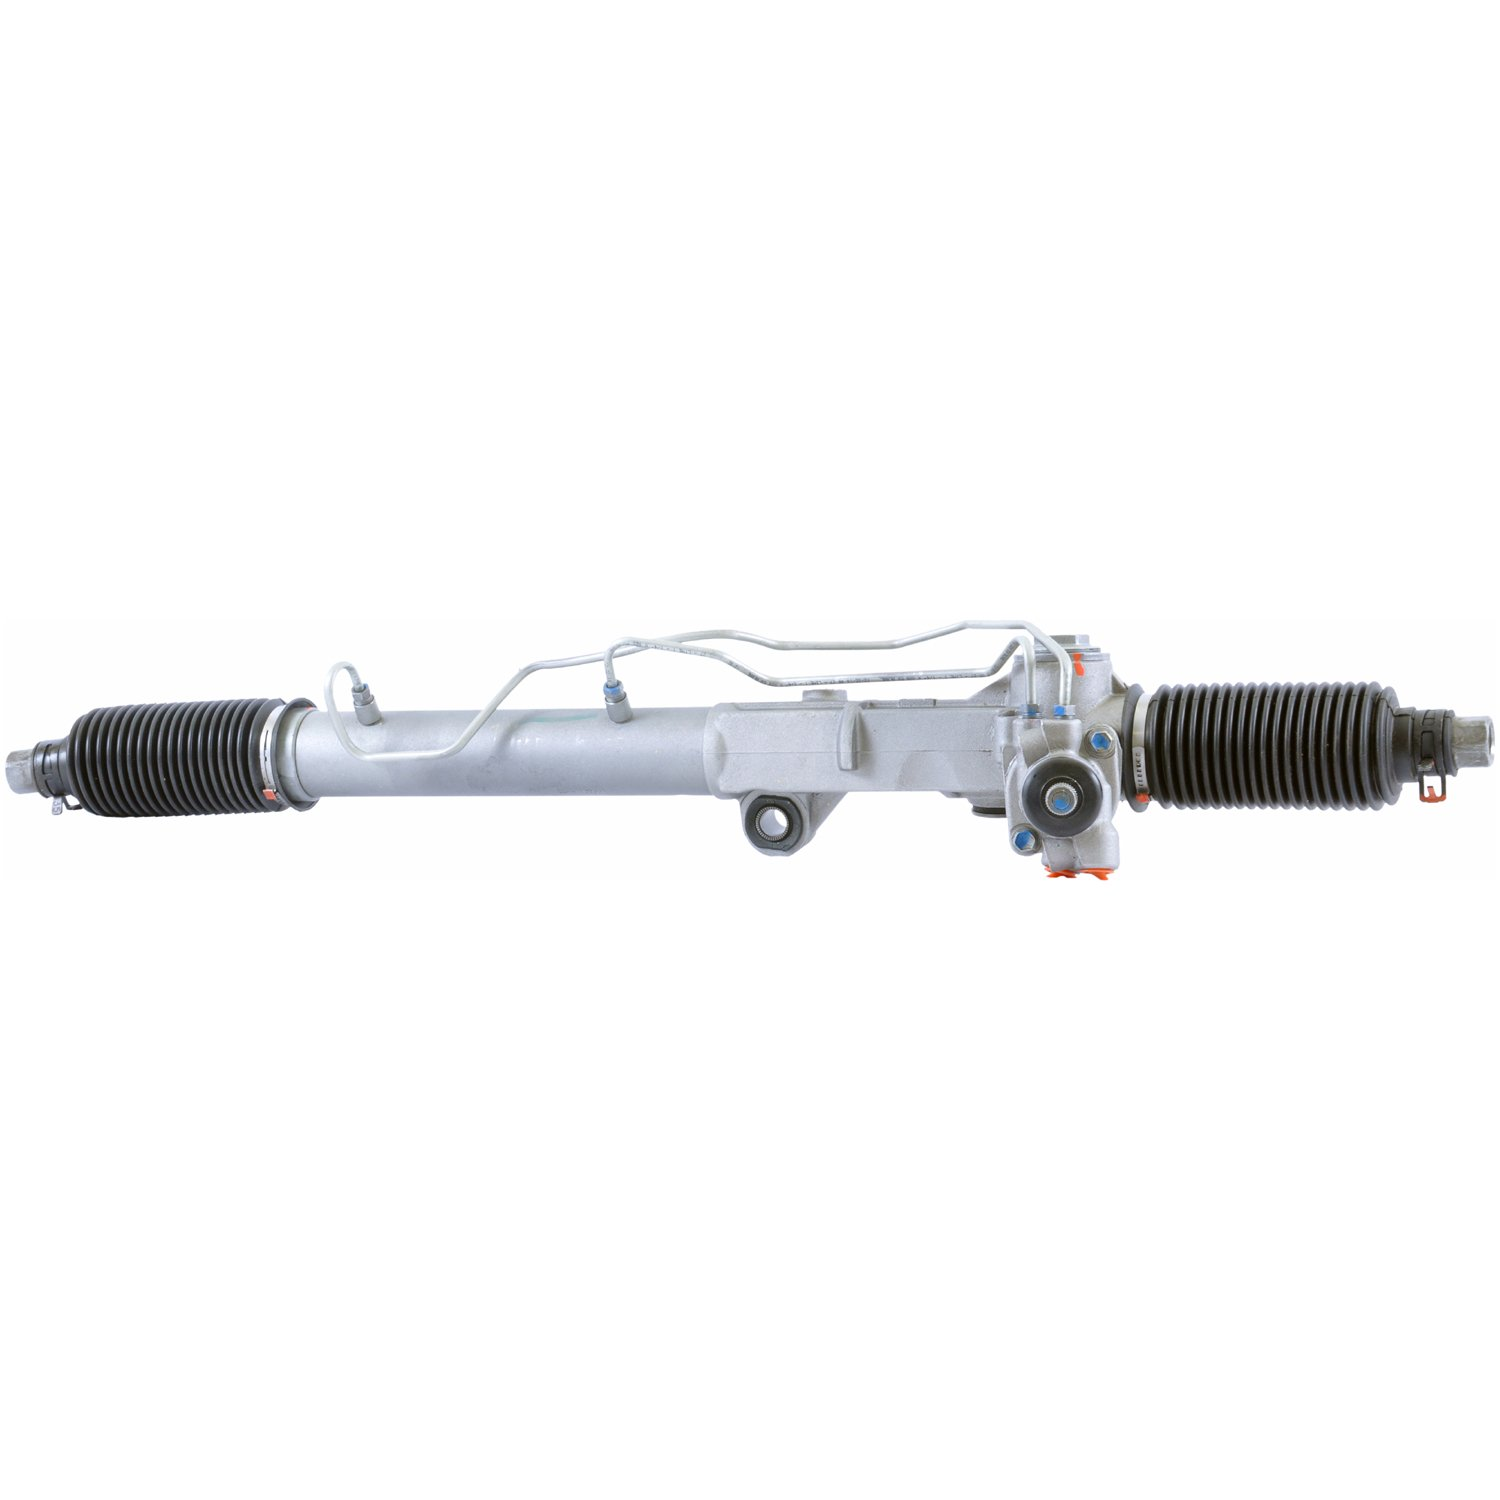 ACDelco 36R0913 Professional Rack and Pinion Power Steering Gear Assembly Remanufactured